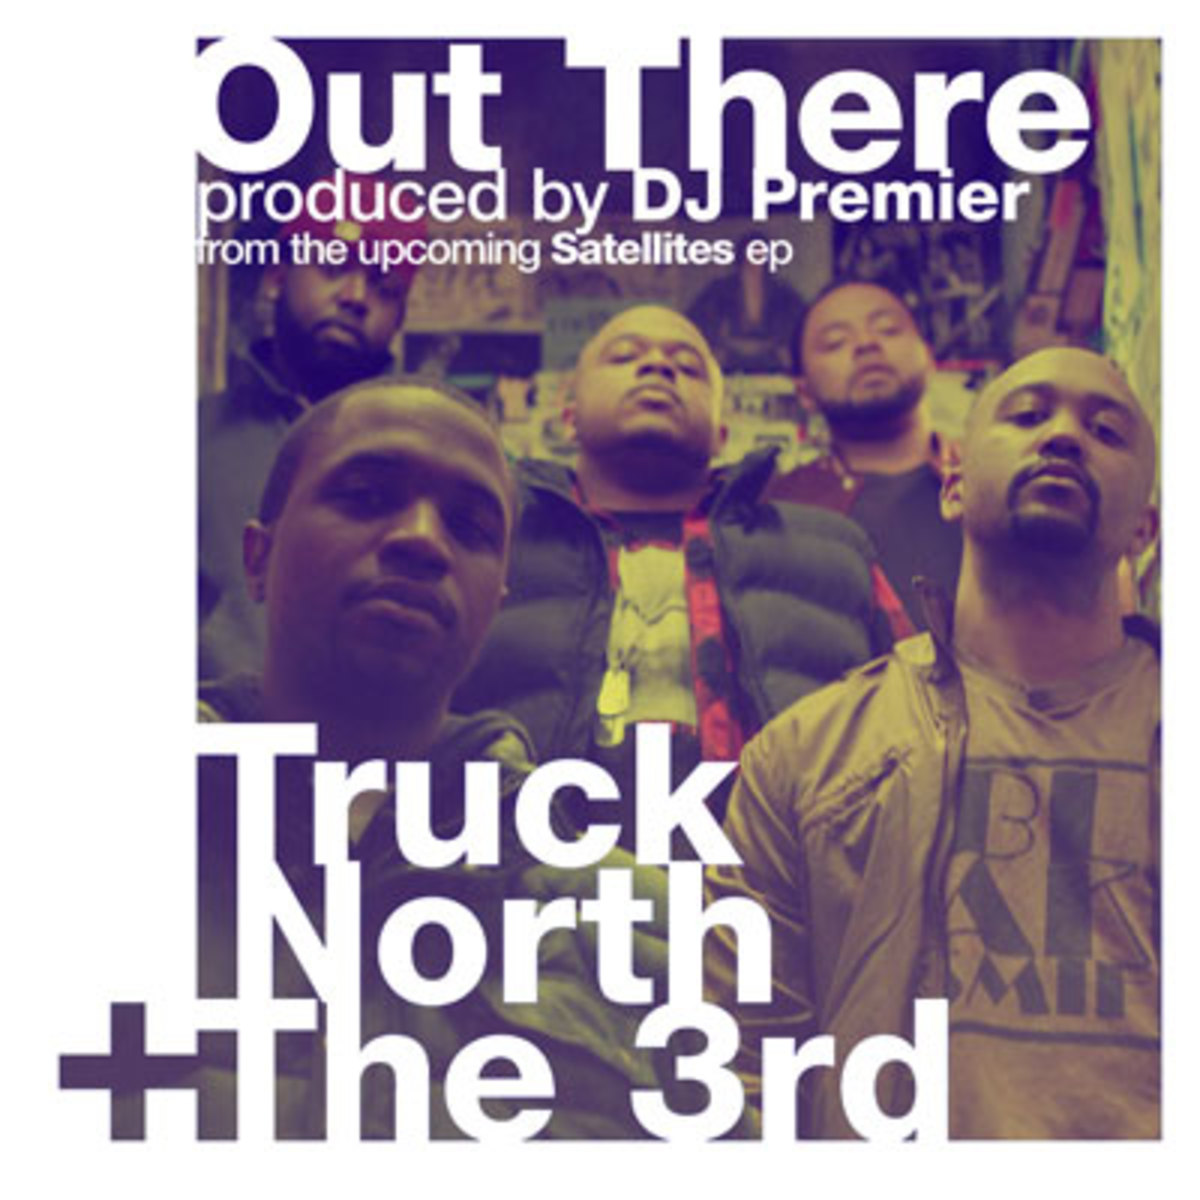 truthnorth-outthere.jpg